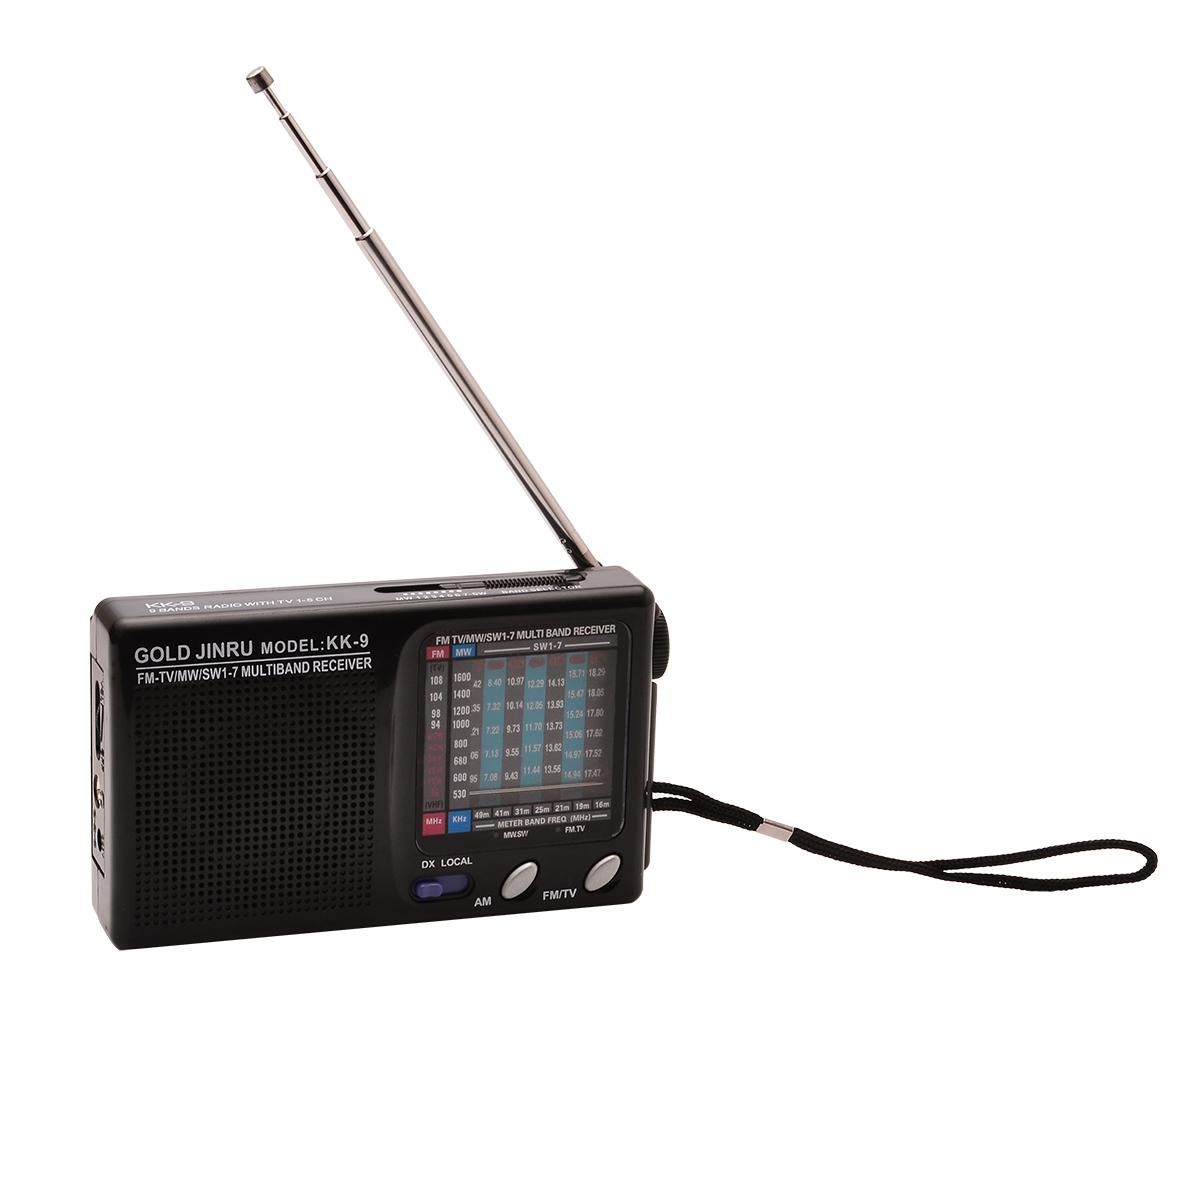 US $7 52 20% OFF|Mayitr 1pc Full World Band DSP FM Stereo/MW/SW Radio  Receiver Portable Design for Elder Adult-in Radio from Consumer Electronics  on